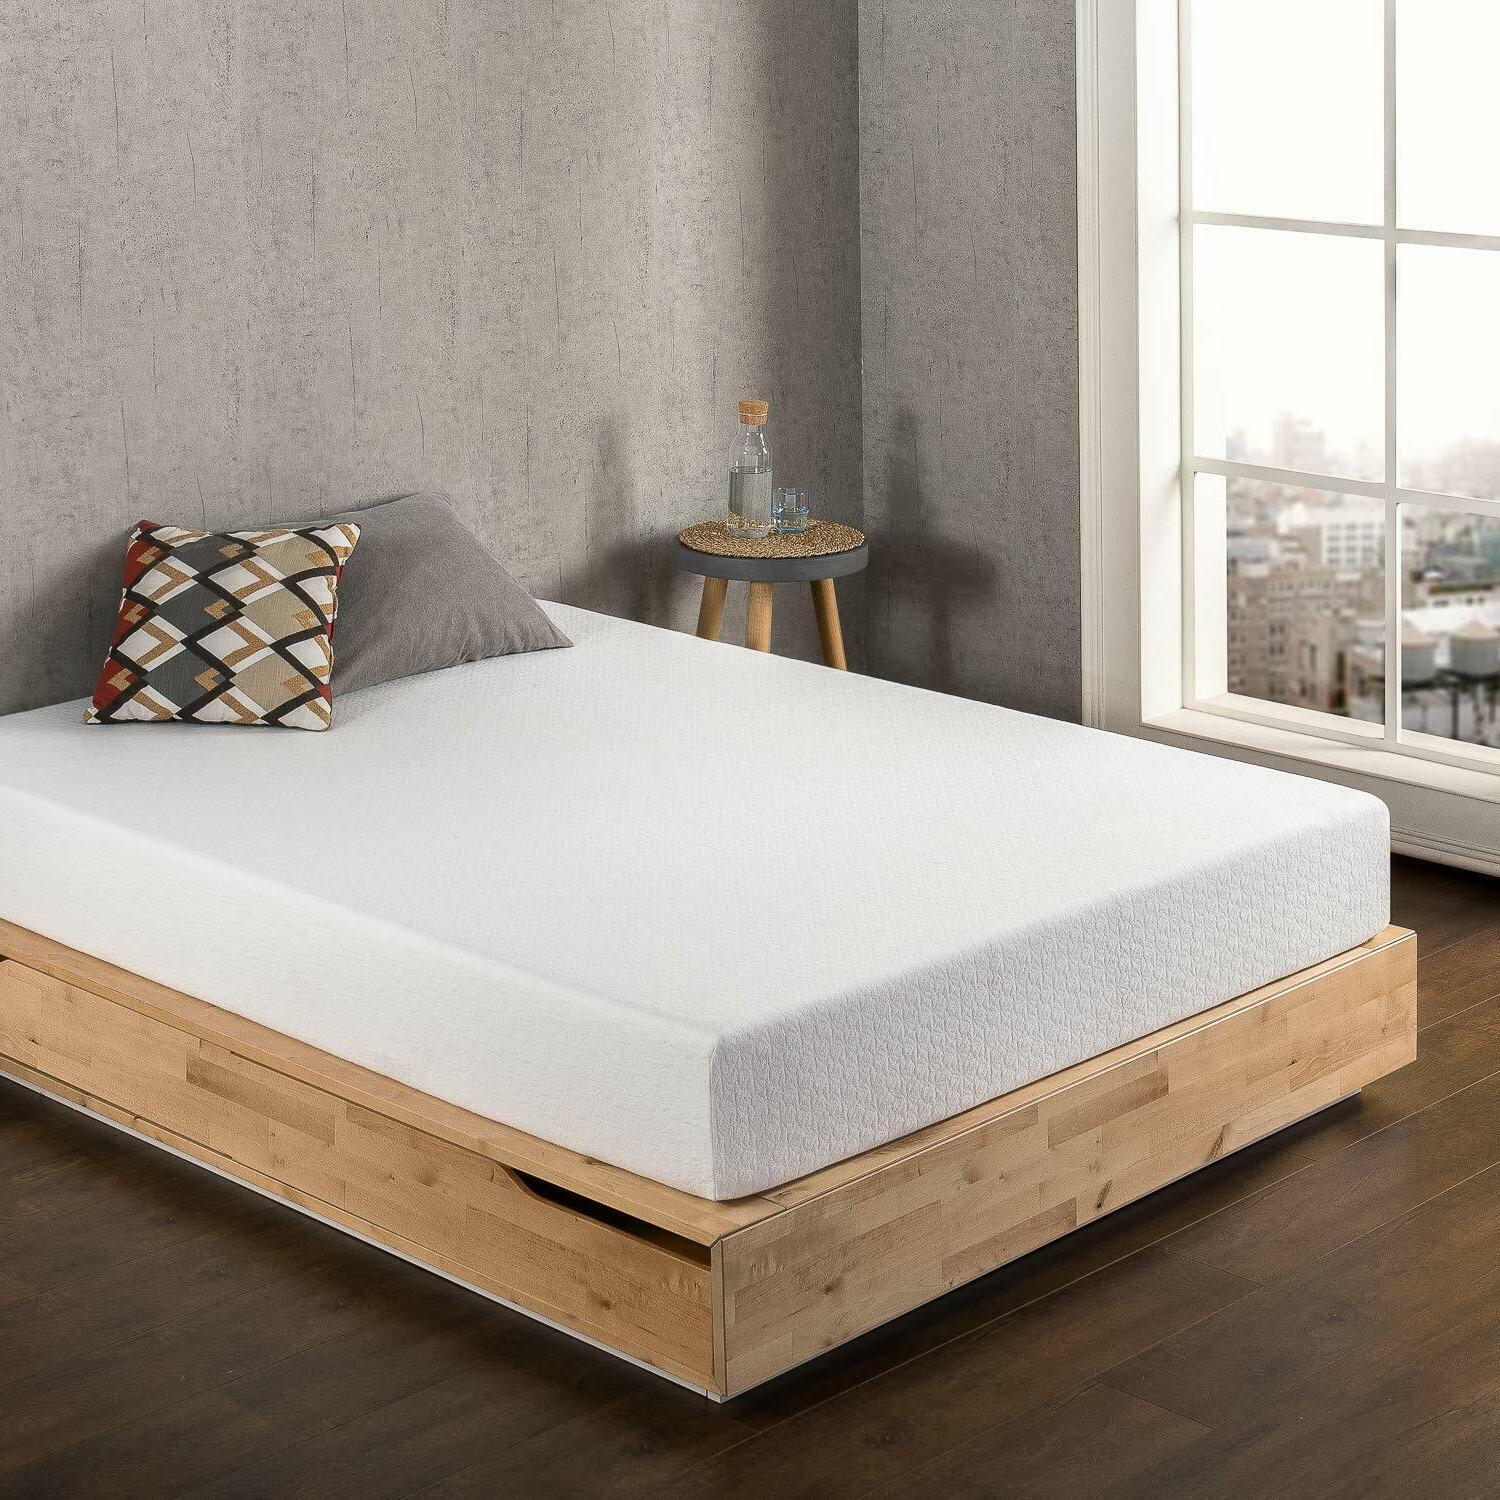 Best Price Inch Mattress New